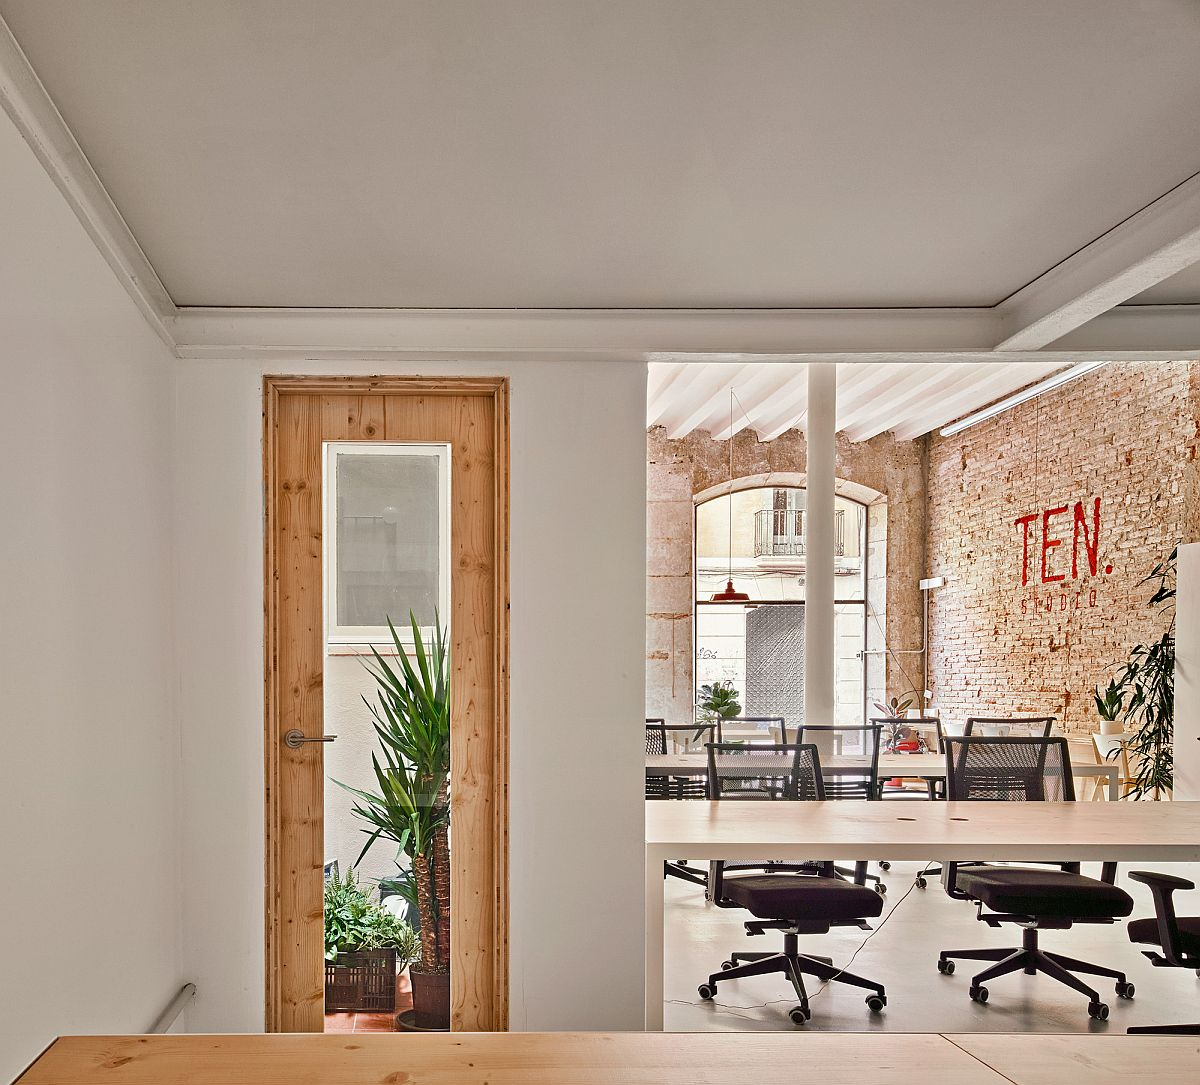 Natural light and revamped interior create a lovely office in Spain